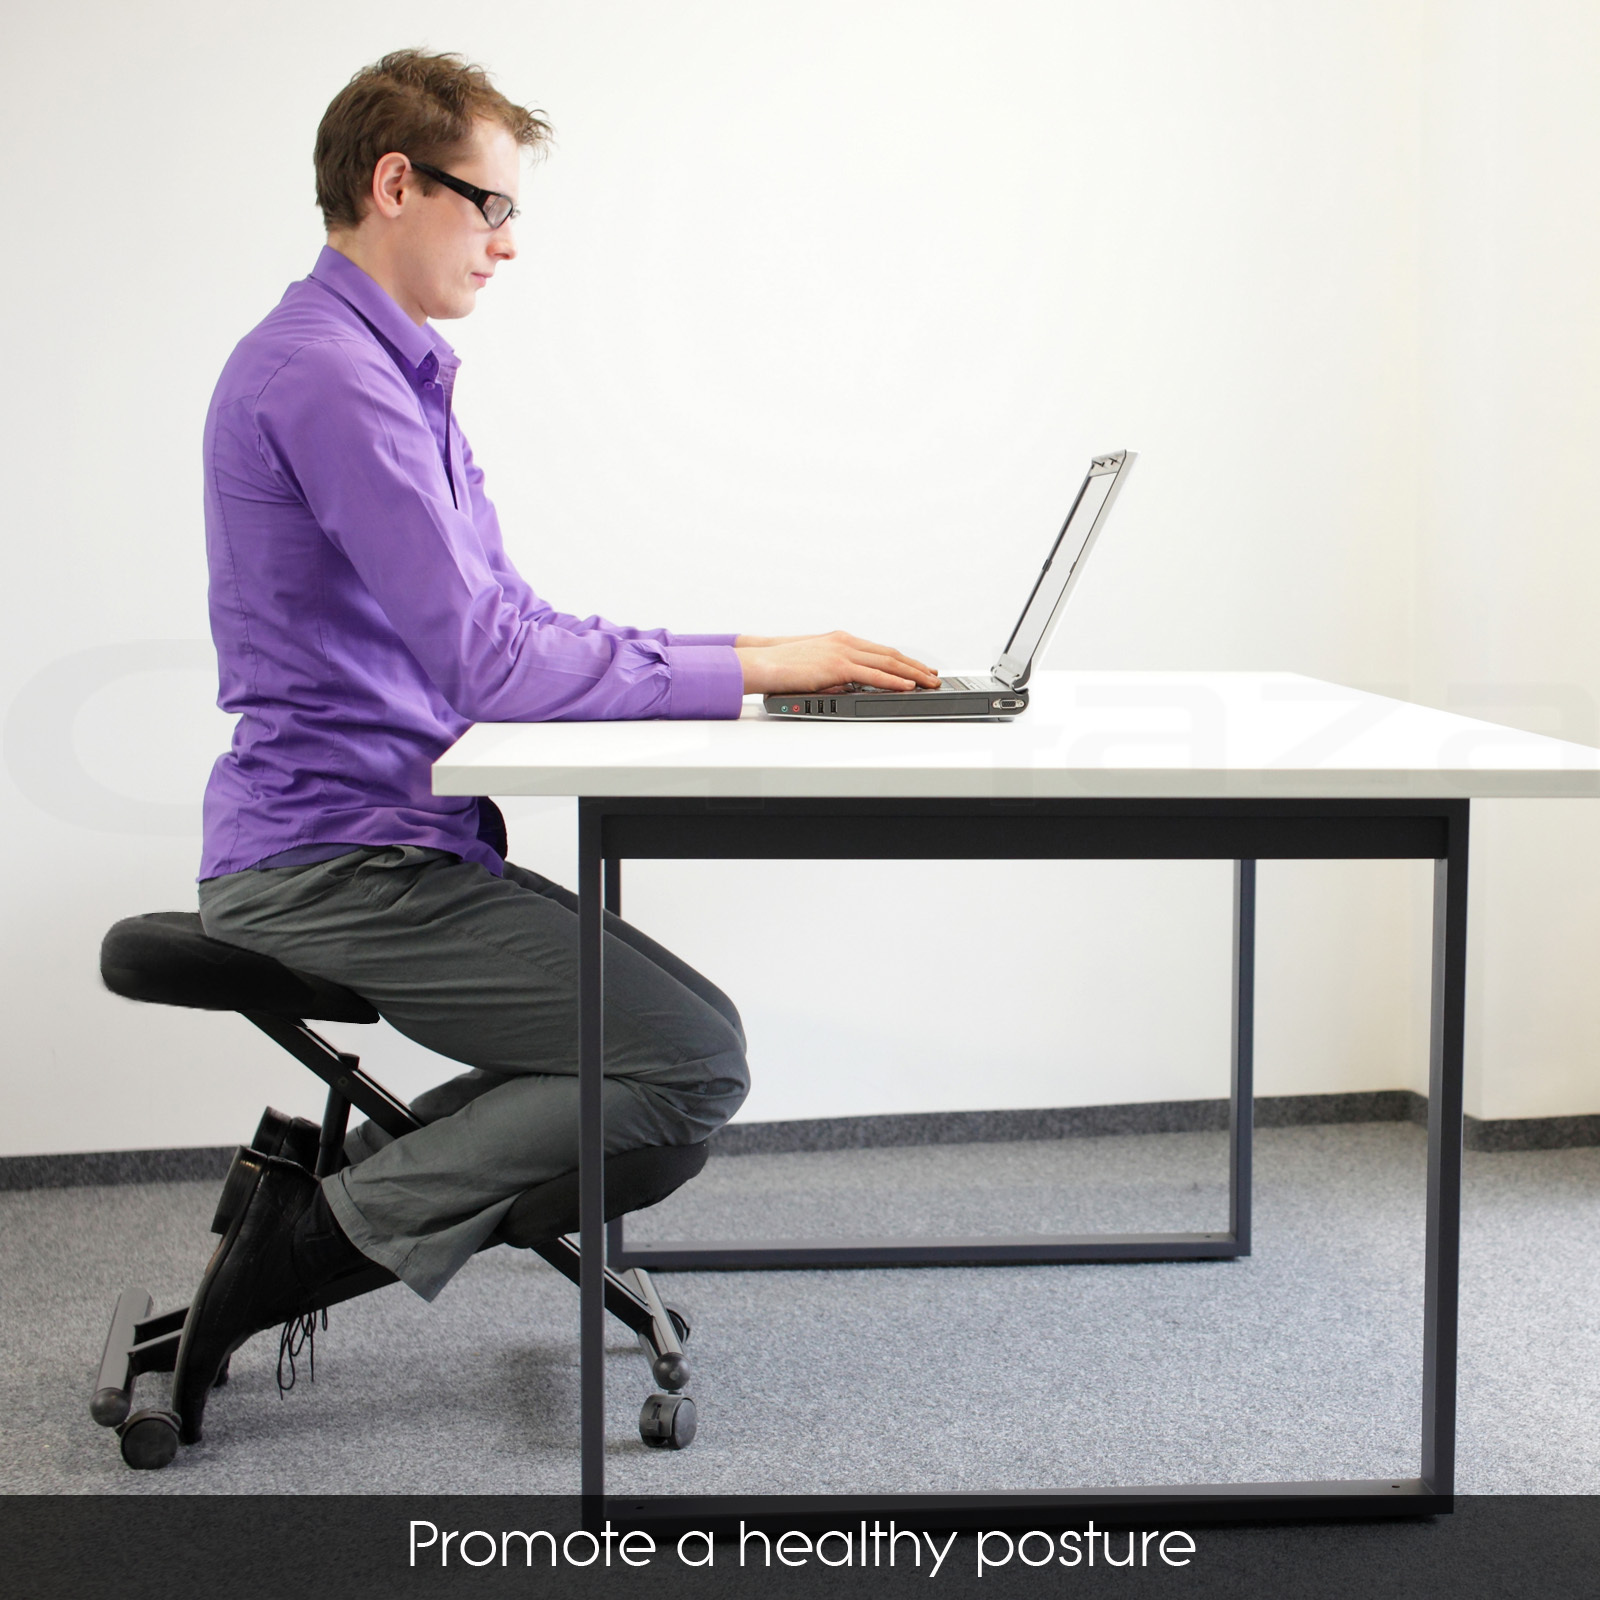 ergonomic yoga chair chaise lounge chairs at target adjustable kneeling office stool stretch knee